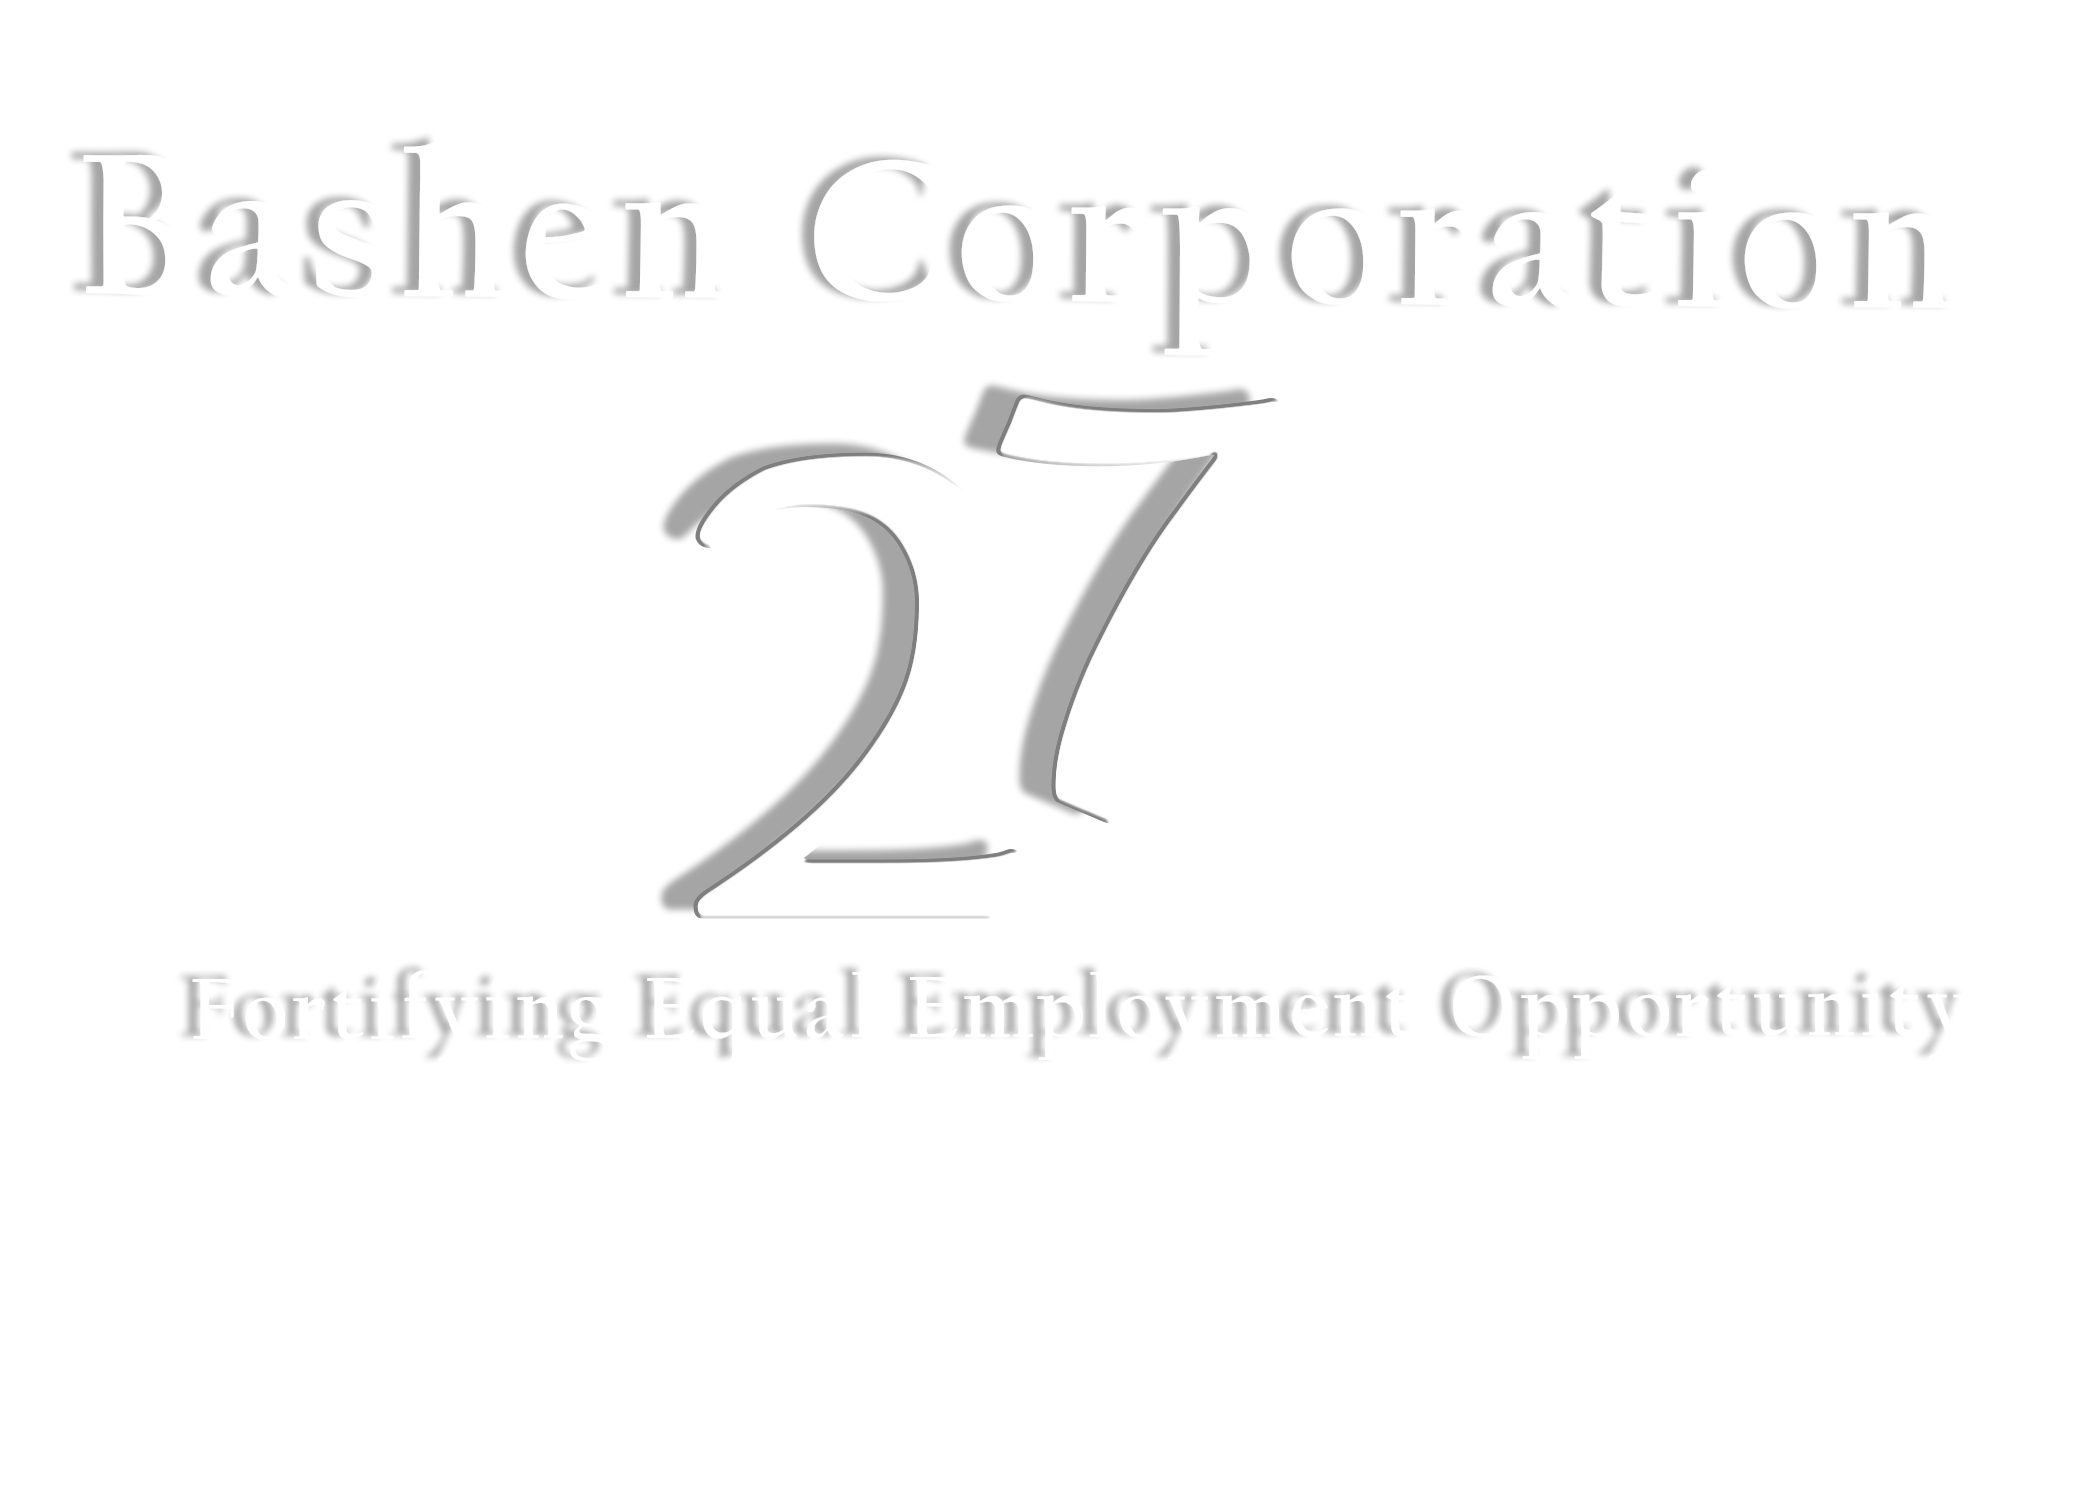 Bashen Corporation - Fortifying EEO Since 1994